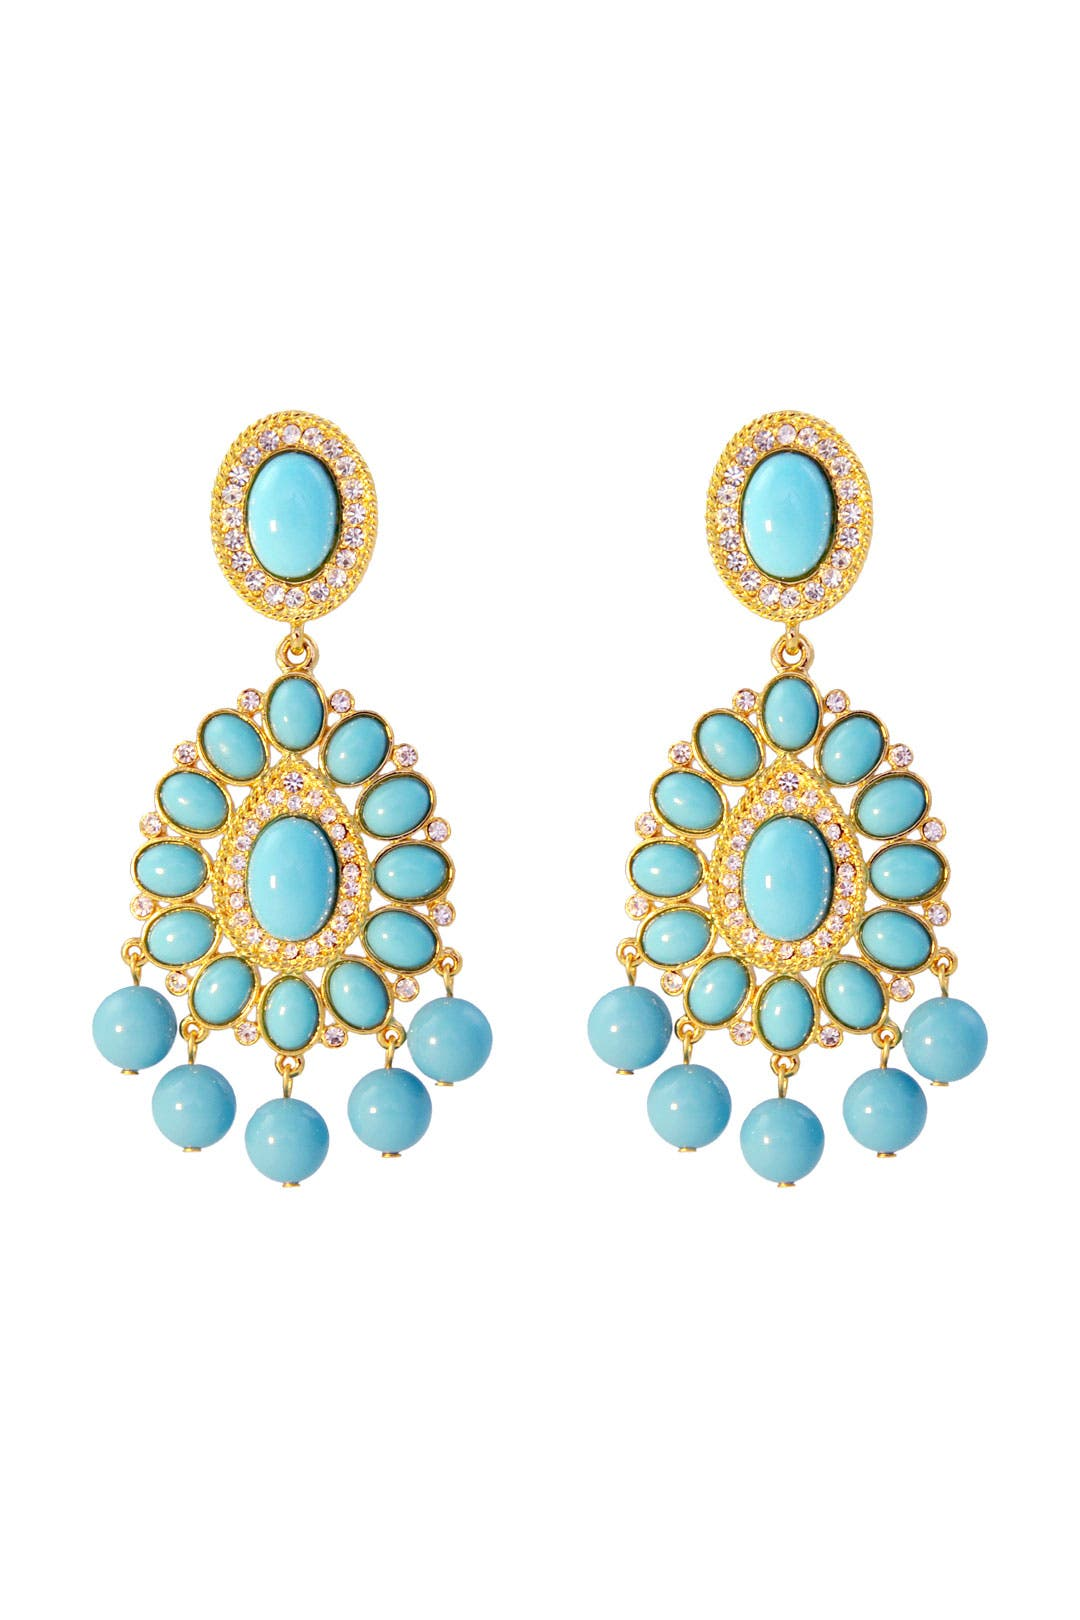 Mediterranean Royalty Earrings by Kenneth Jay Lane